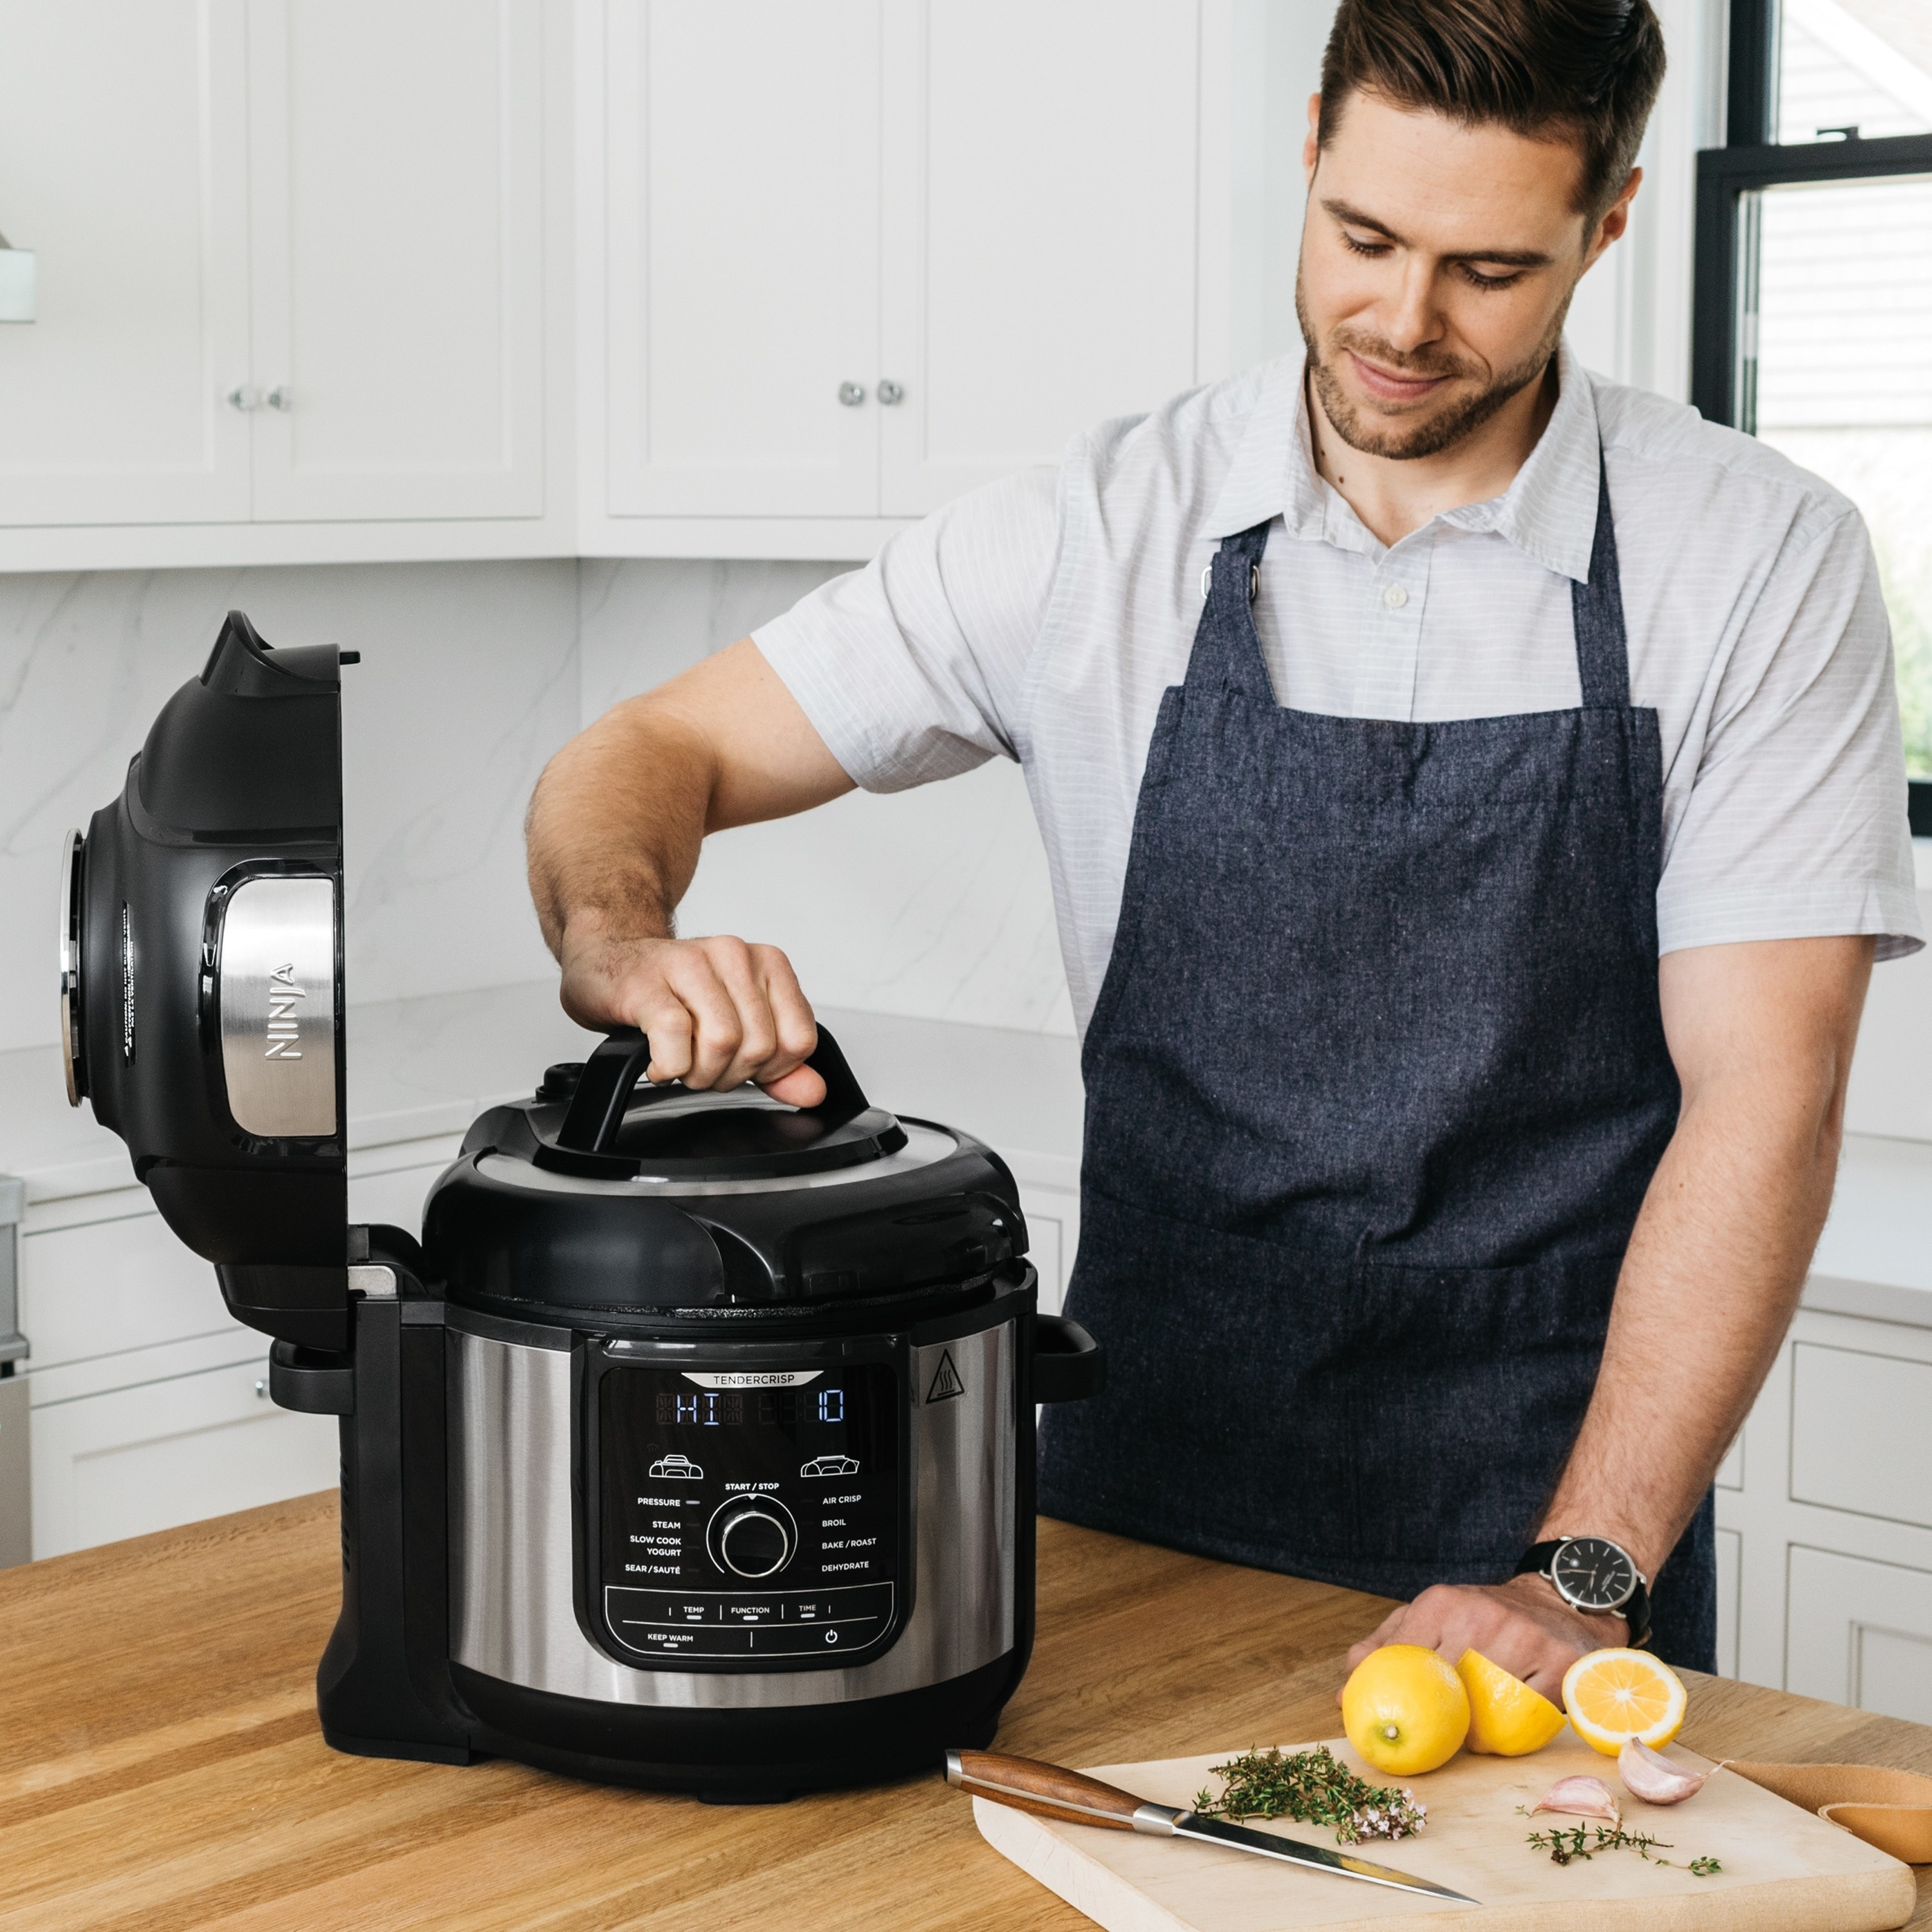 The pressure cooker being used